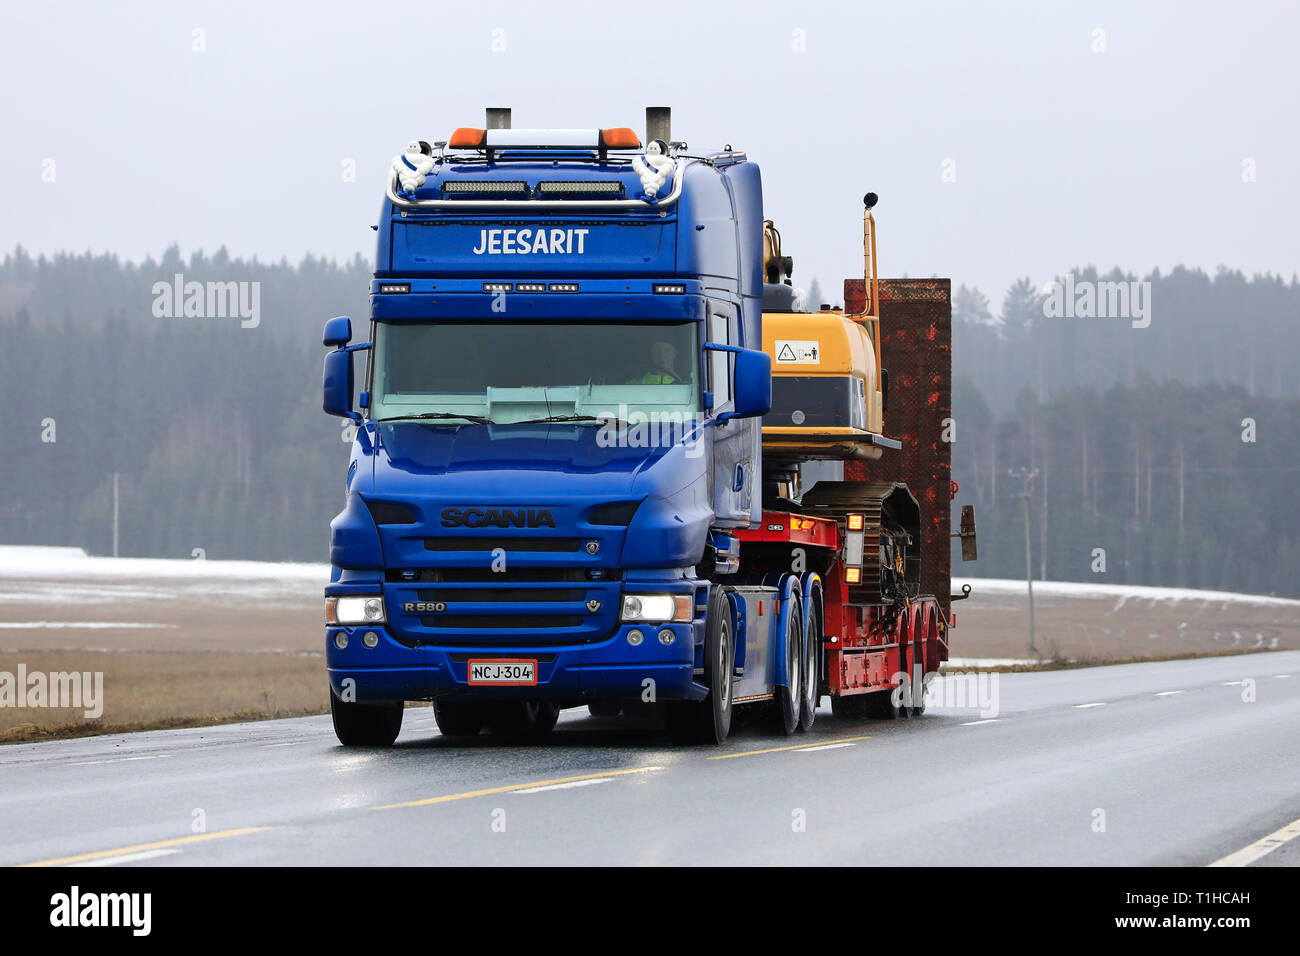 Jokioinen, Finland - March 23, 2019:  Blue Scania R580 conventional cab of Maansiirto Jeesarit Oy hauls tracked excavator on trailer along highway. - Stock Image